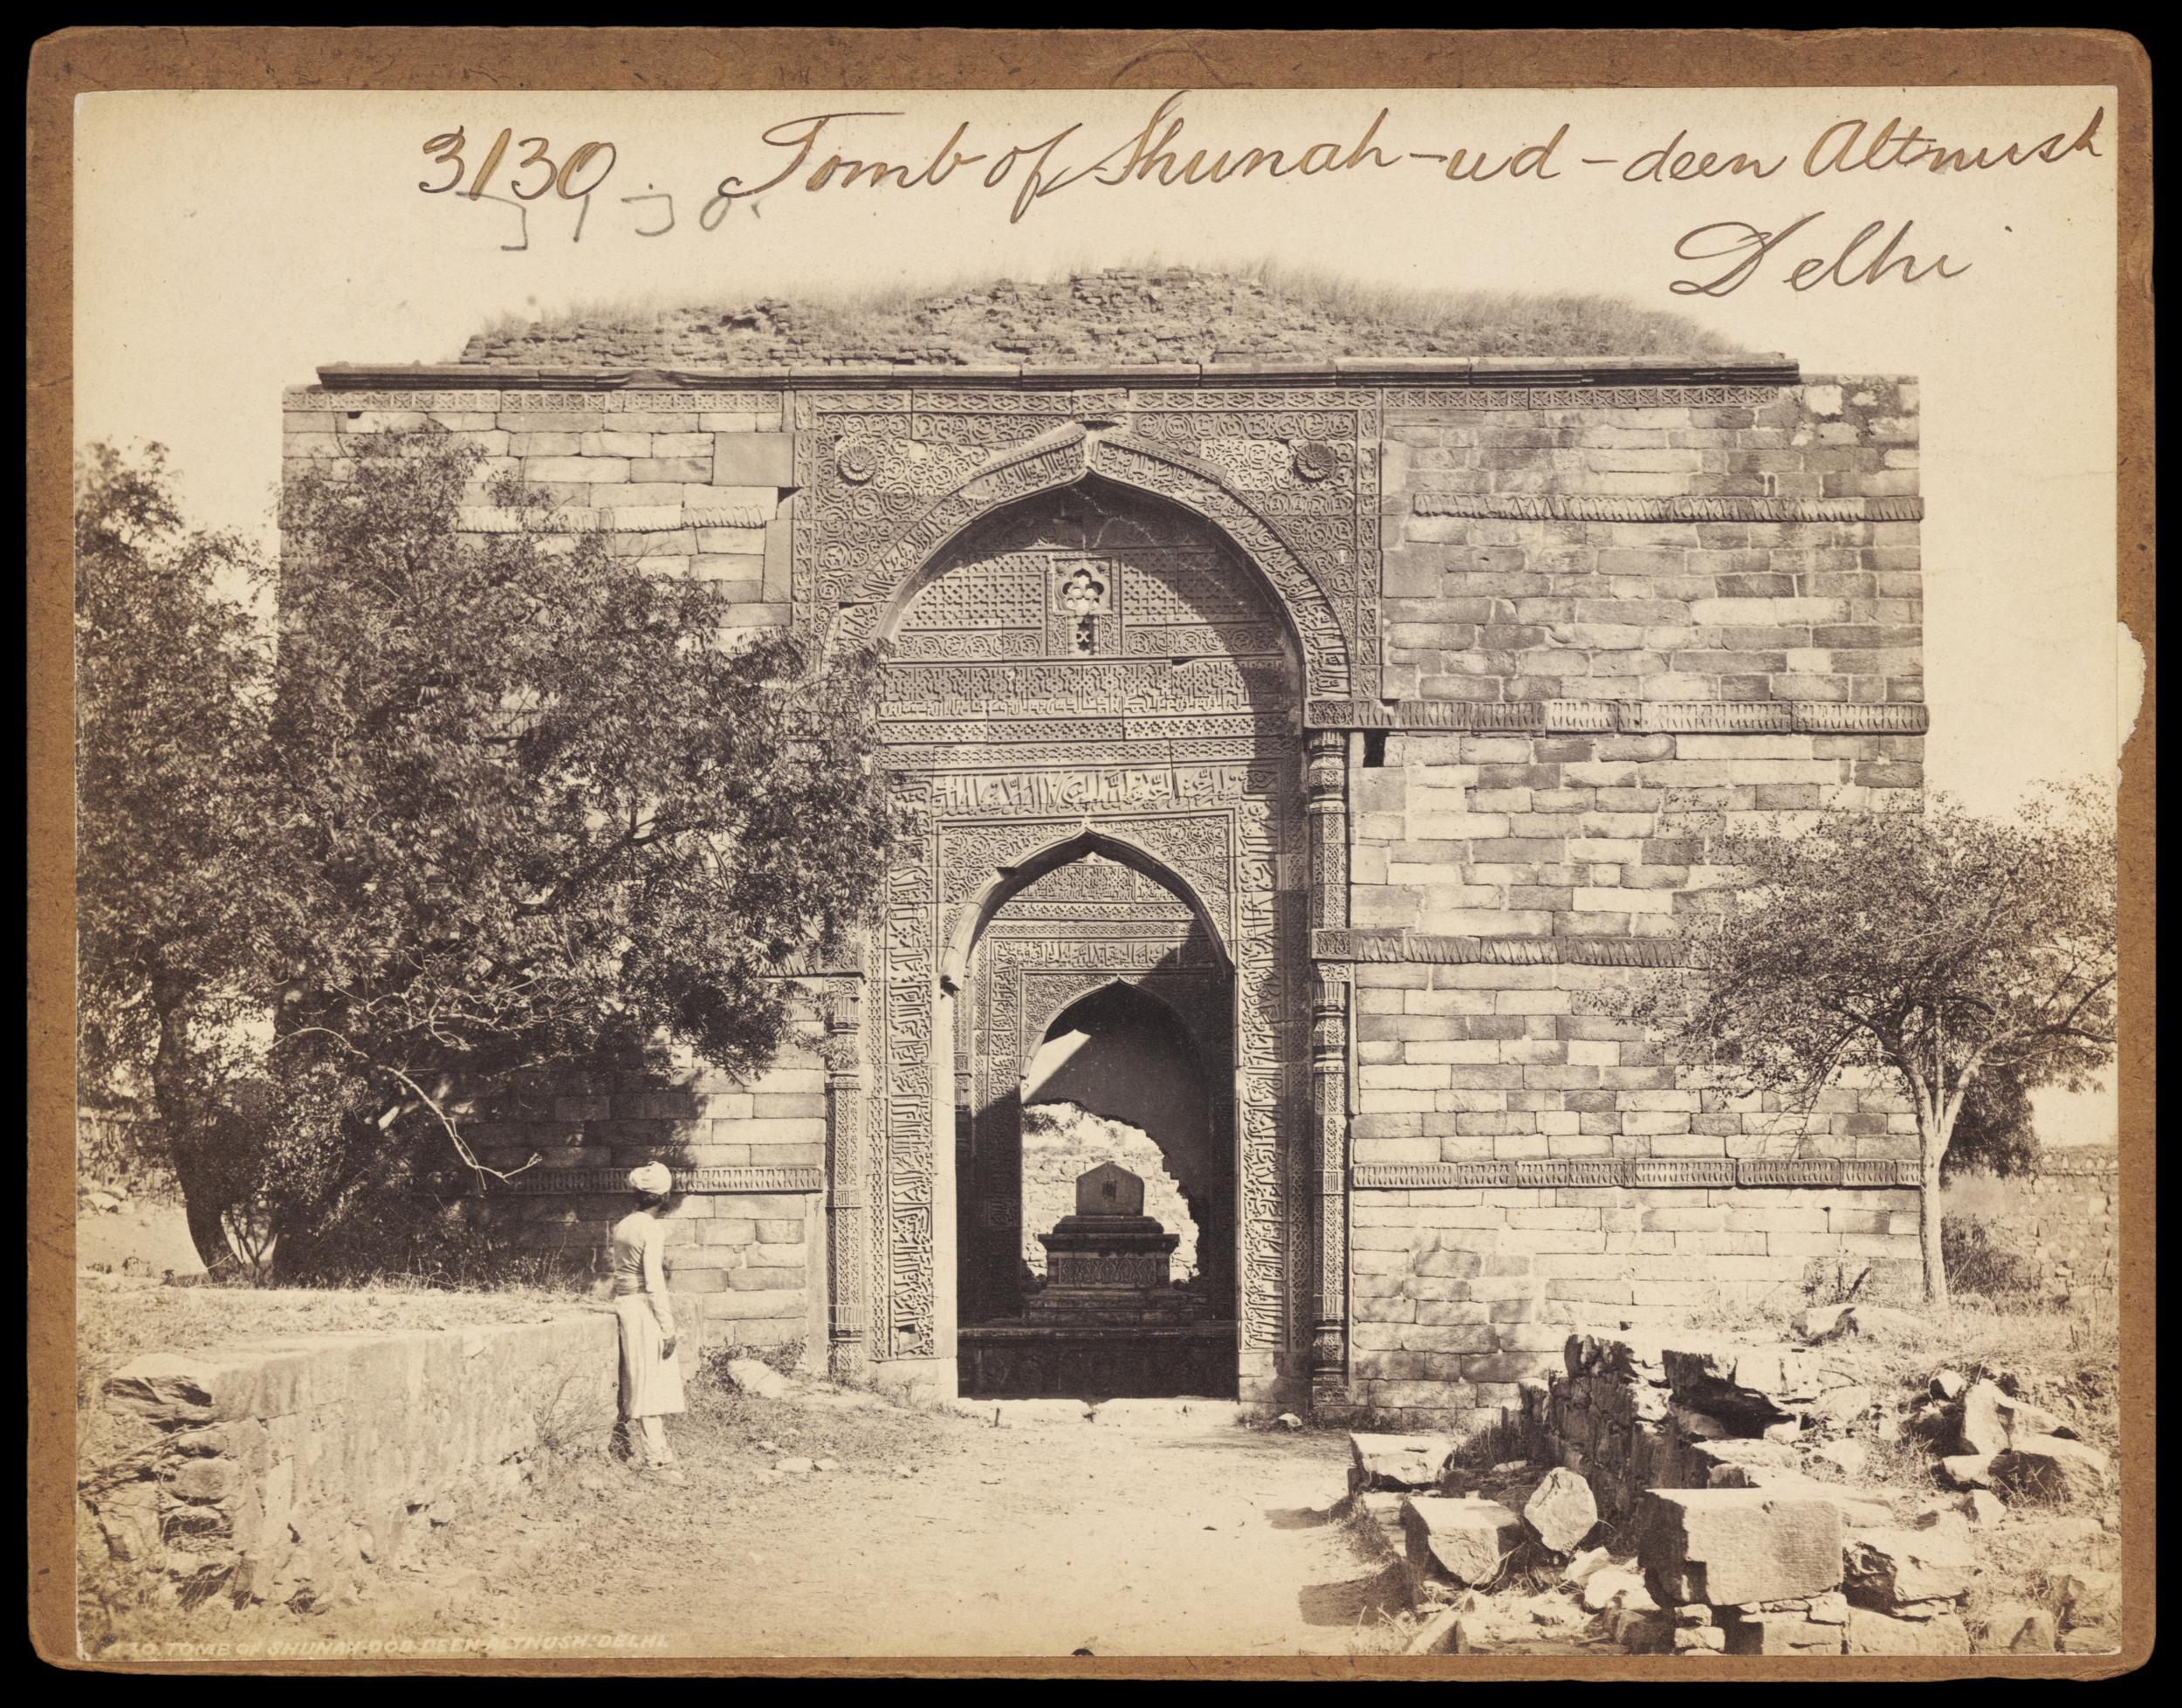 Tomb of Shams-ud-din Iltutmish in the Qutb complex, Delhi  - Mid 19th Century